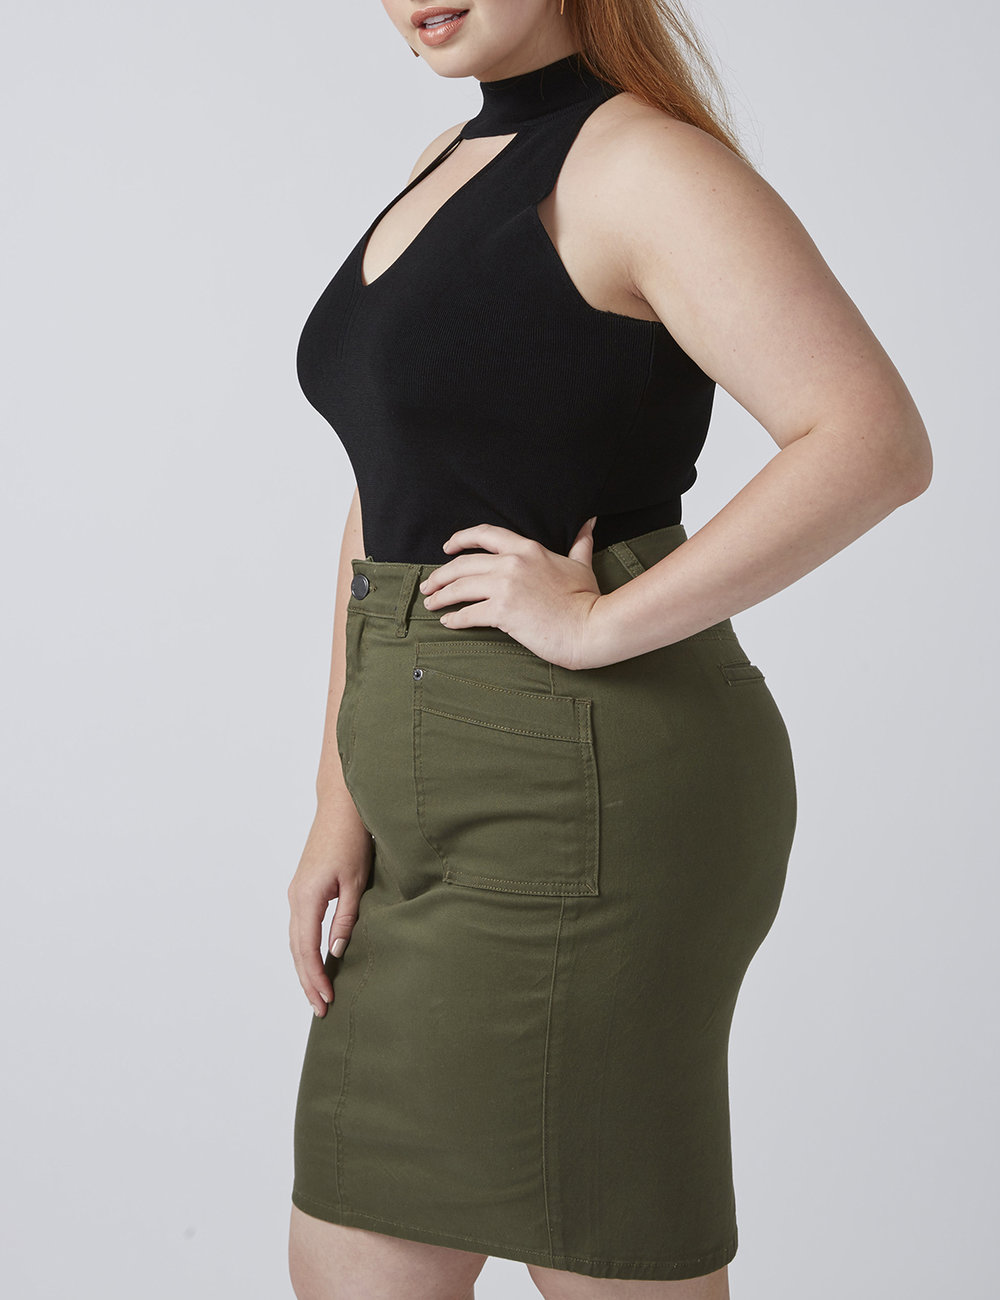 fashion model in black tank top and military green skirt posing with hand on hip